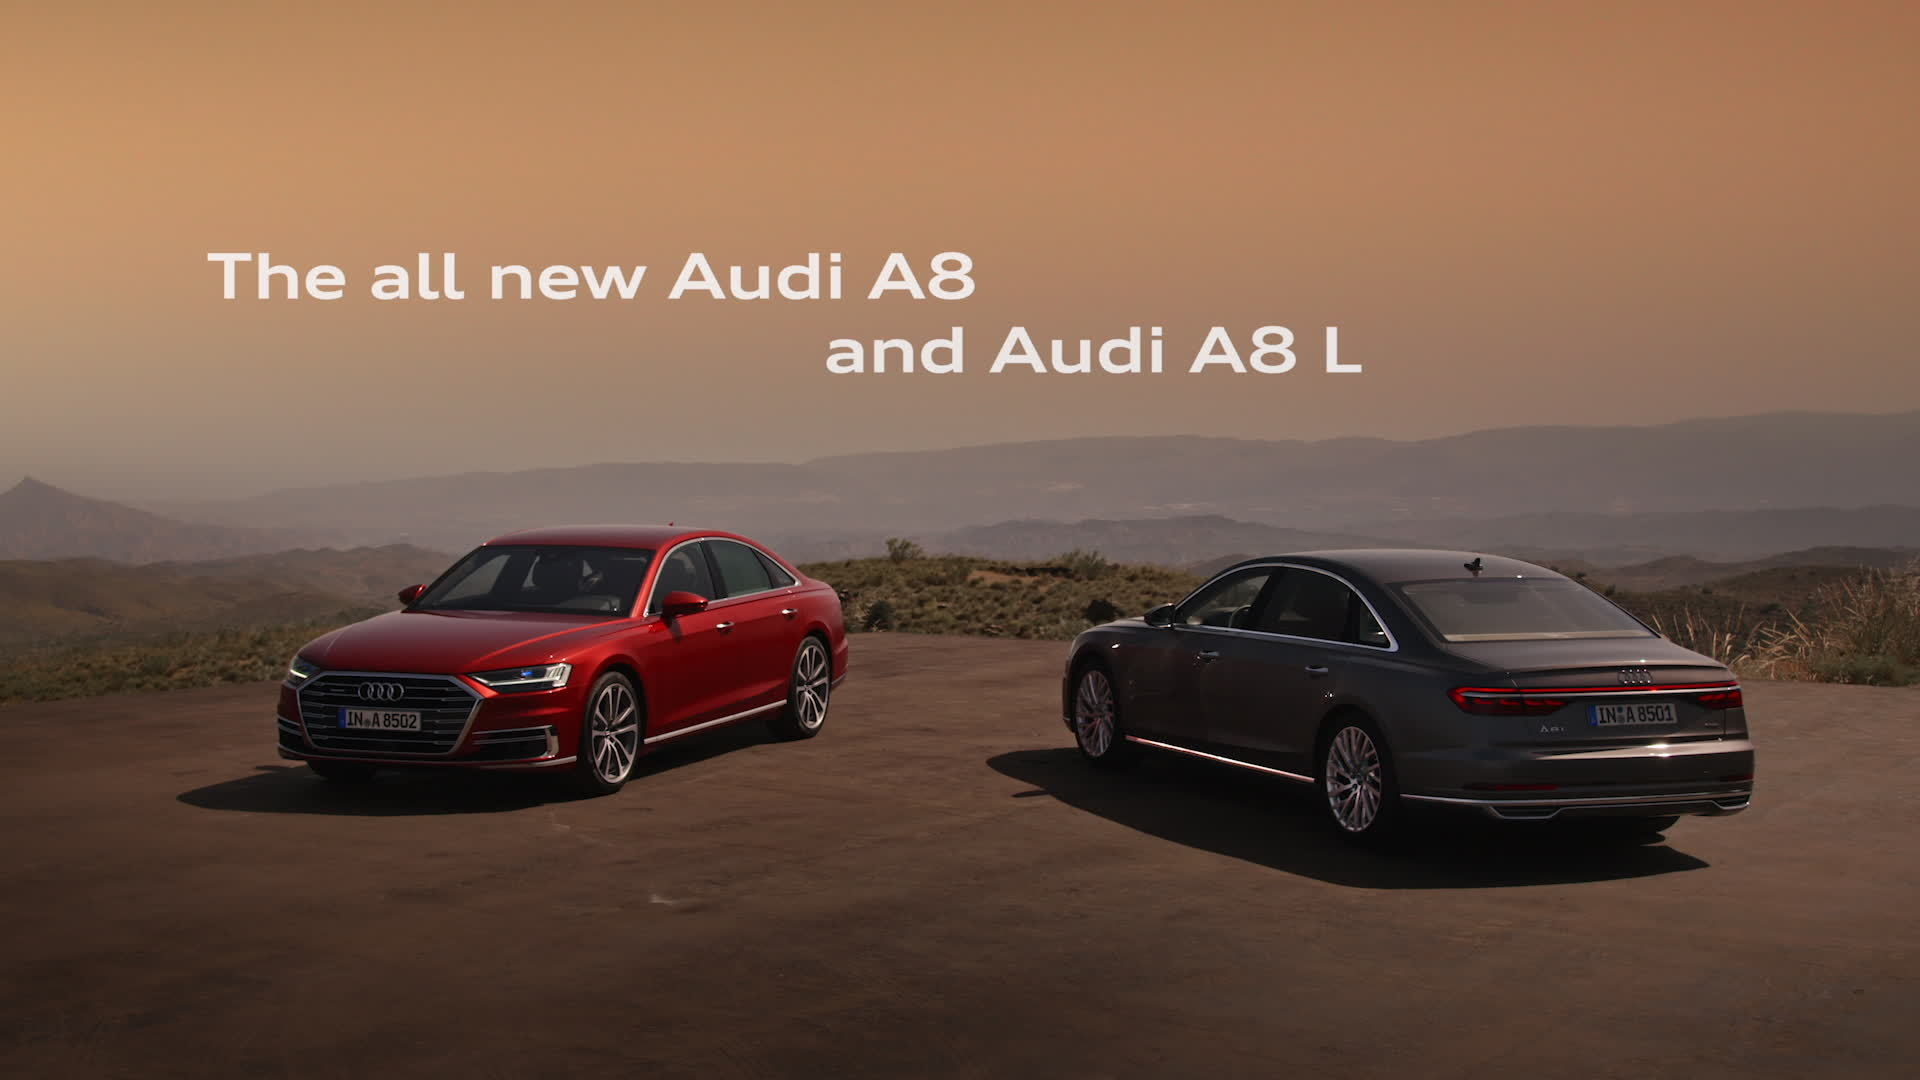 The new Audi A8 and Audi A8 L